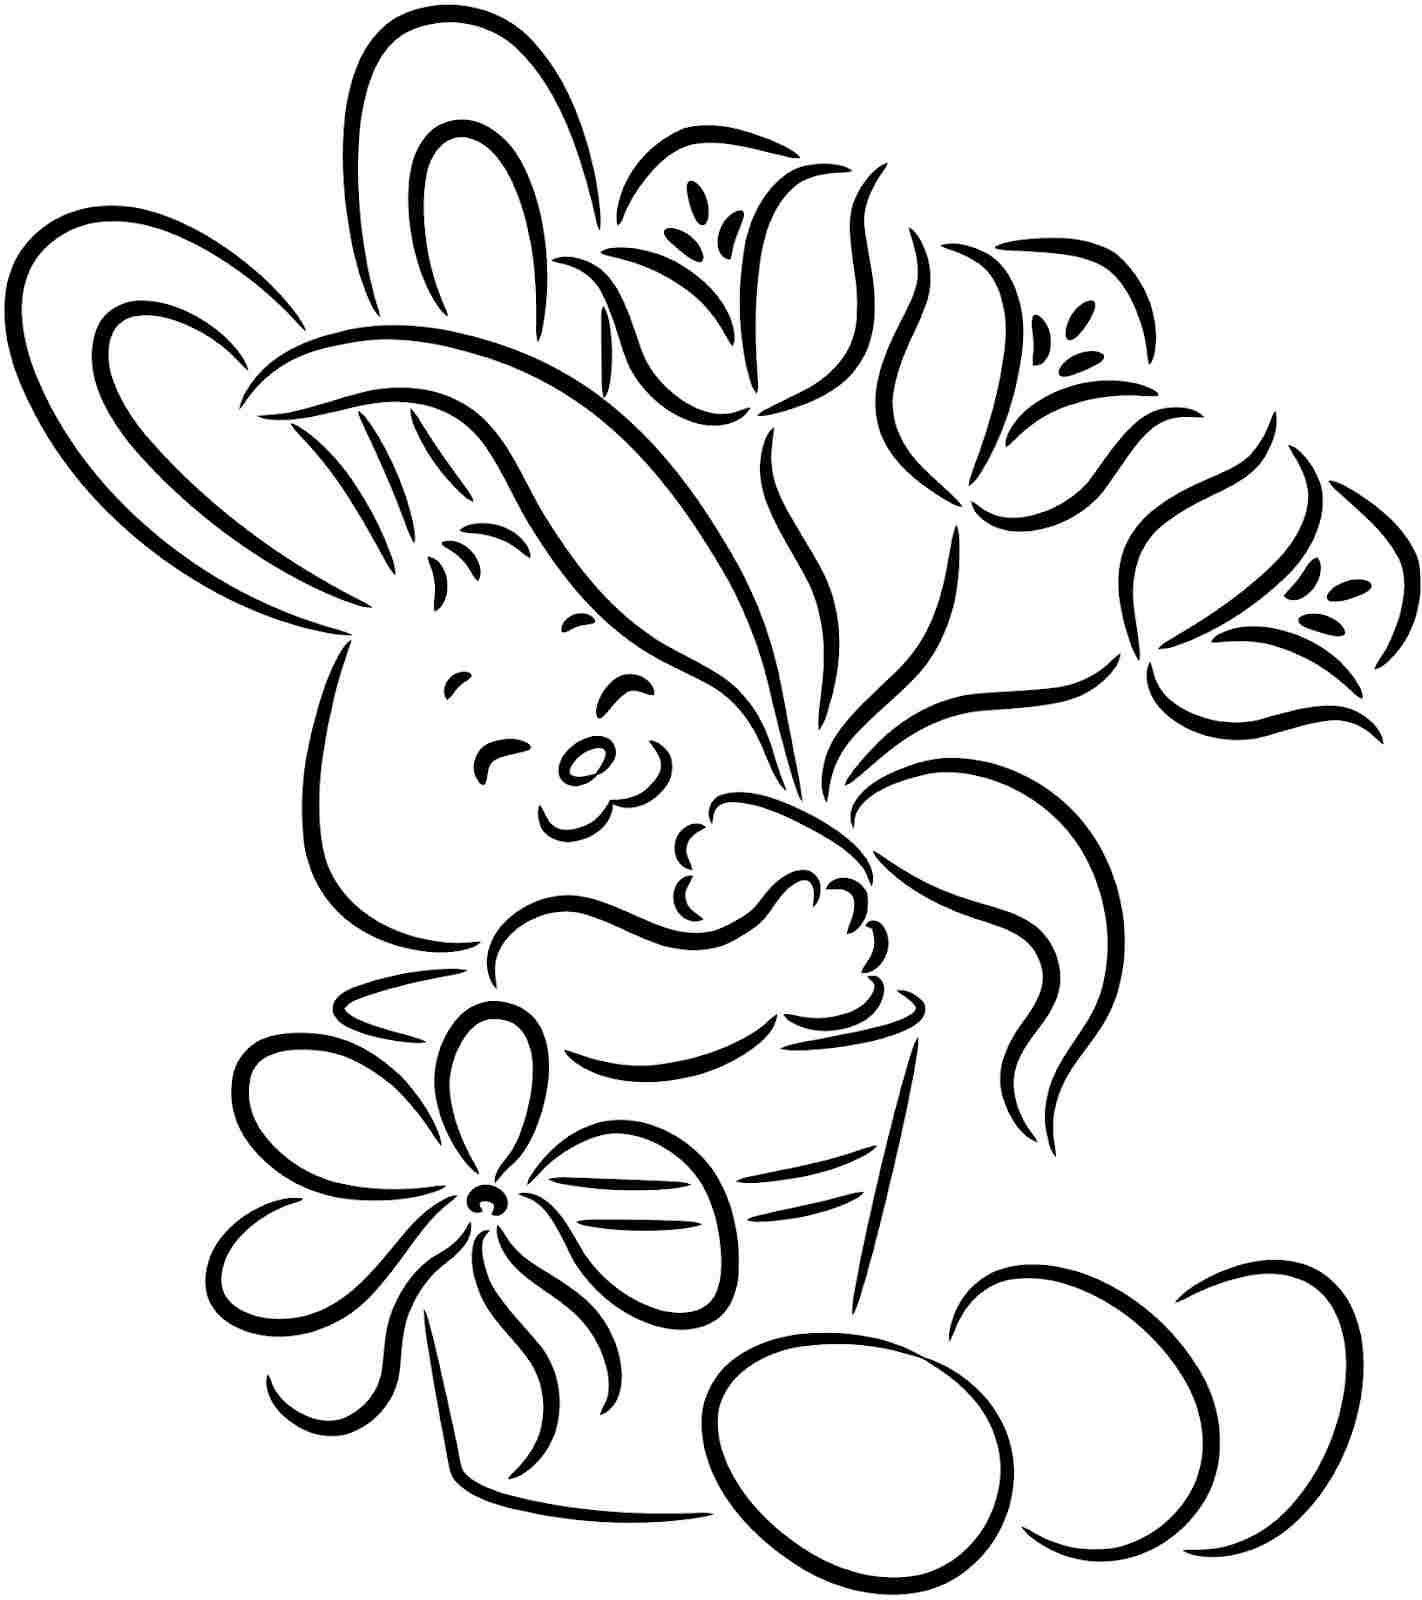 Free Easter Coloring Pages For Children #3 | Line Drawing ...